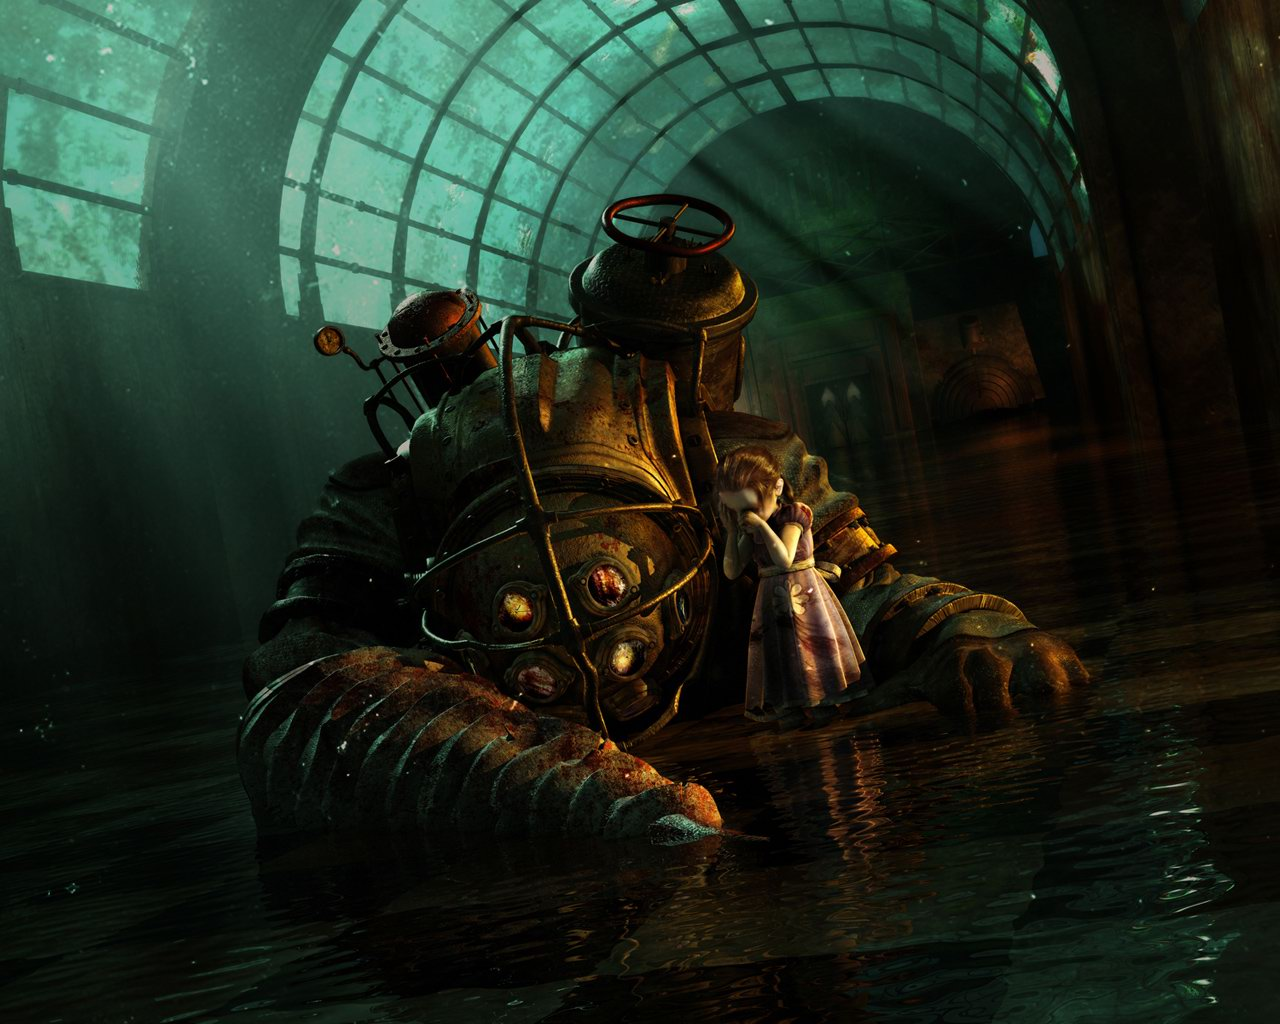 Bioshock Wallpaper Pack (6) [Source: Take Two]